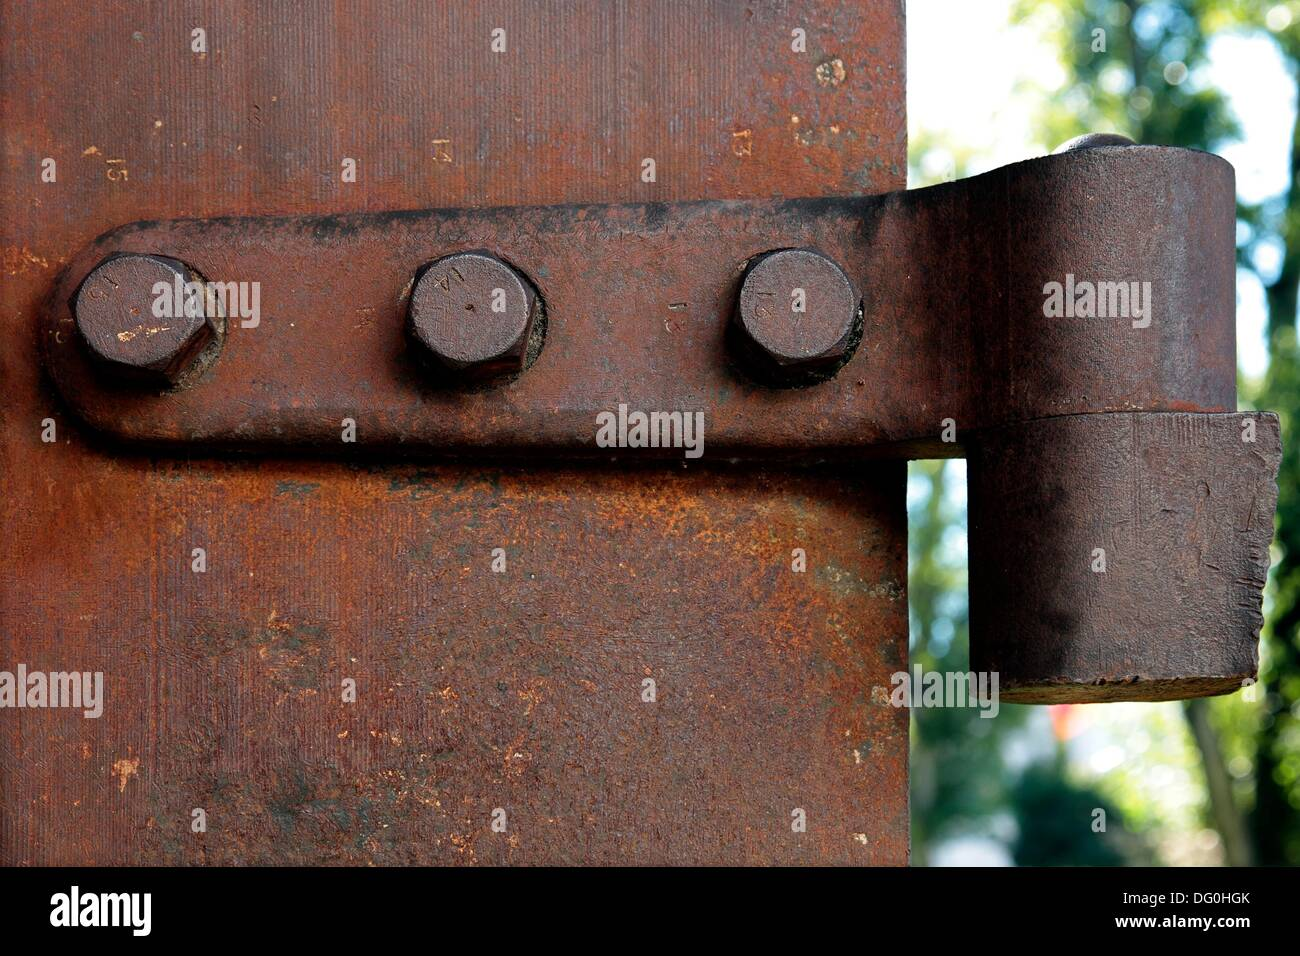 Türscharnier Holztür Iron Ship Door Stockfotos And Iron Ship Door Bilder Alamy